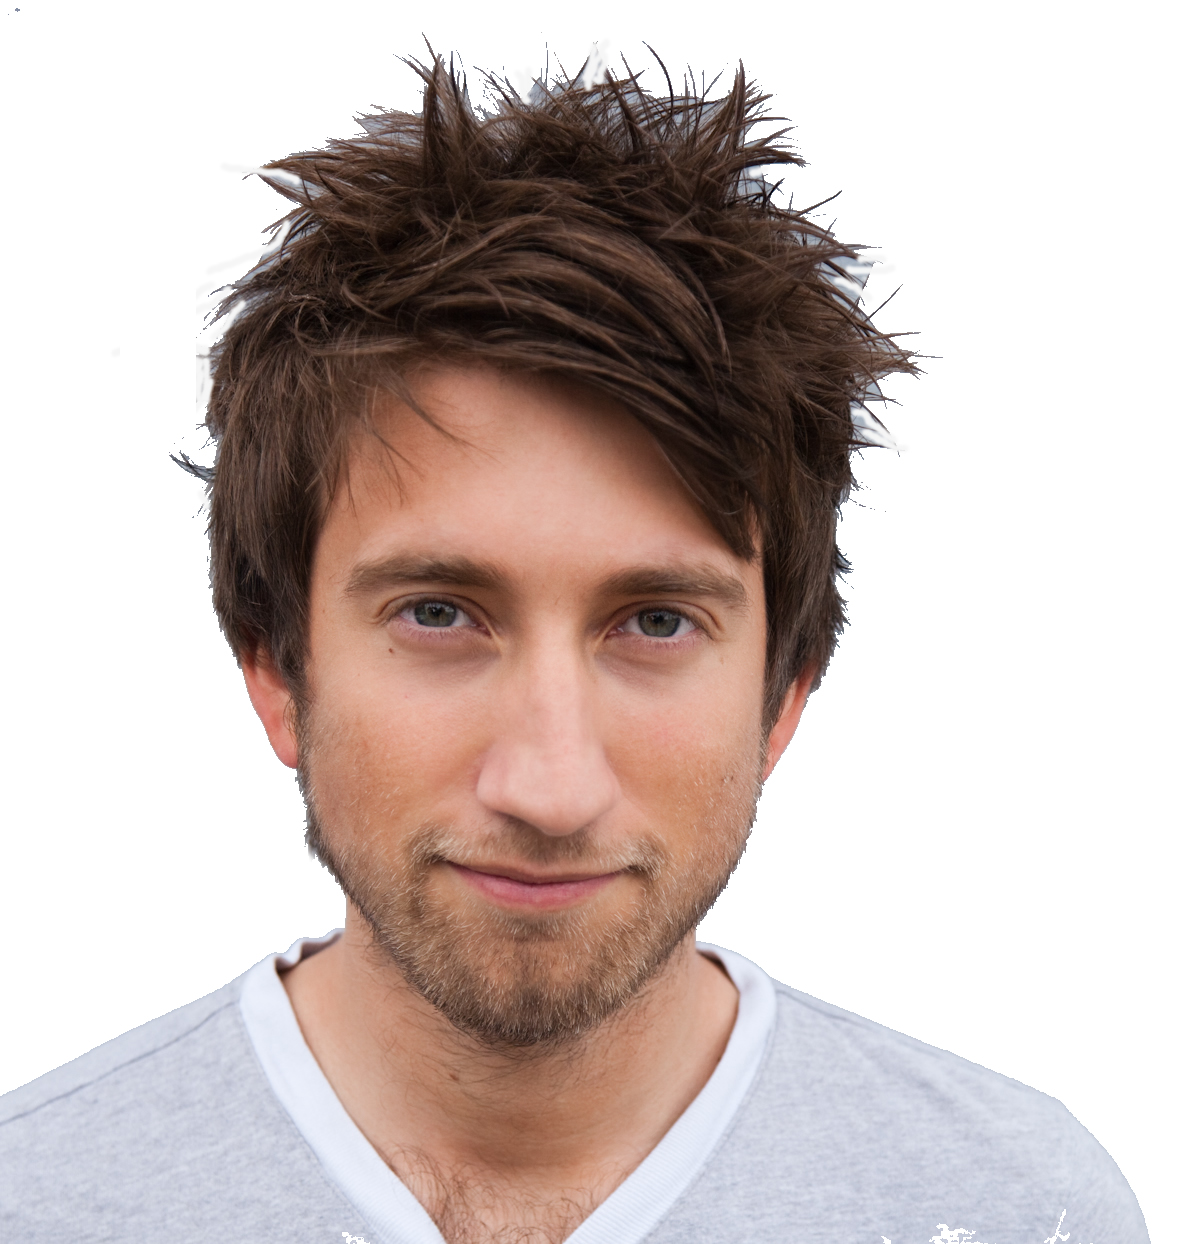 Web Video Star Gavin Free - age: 32